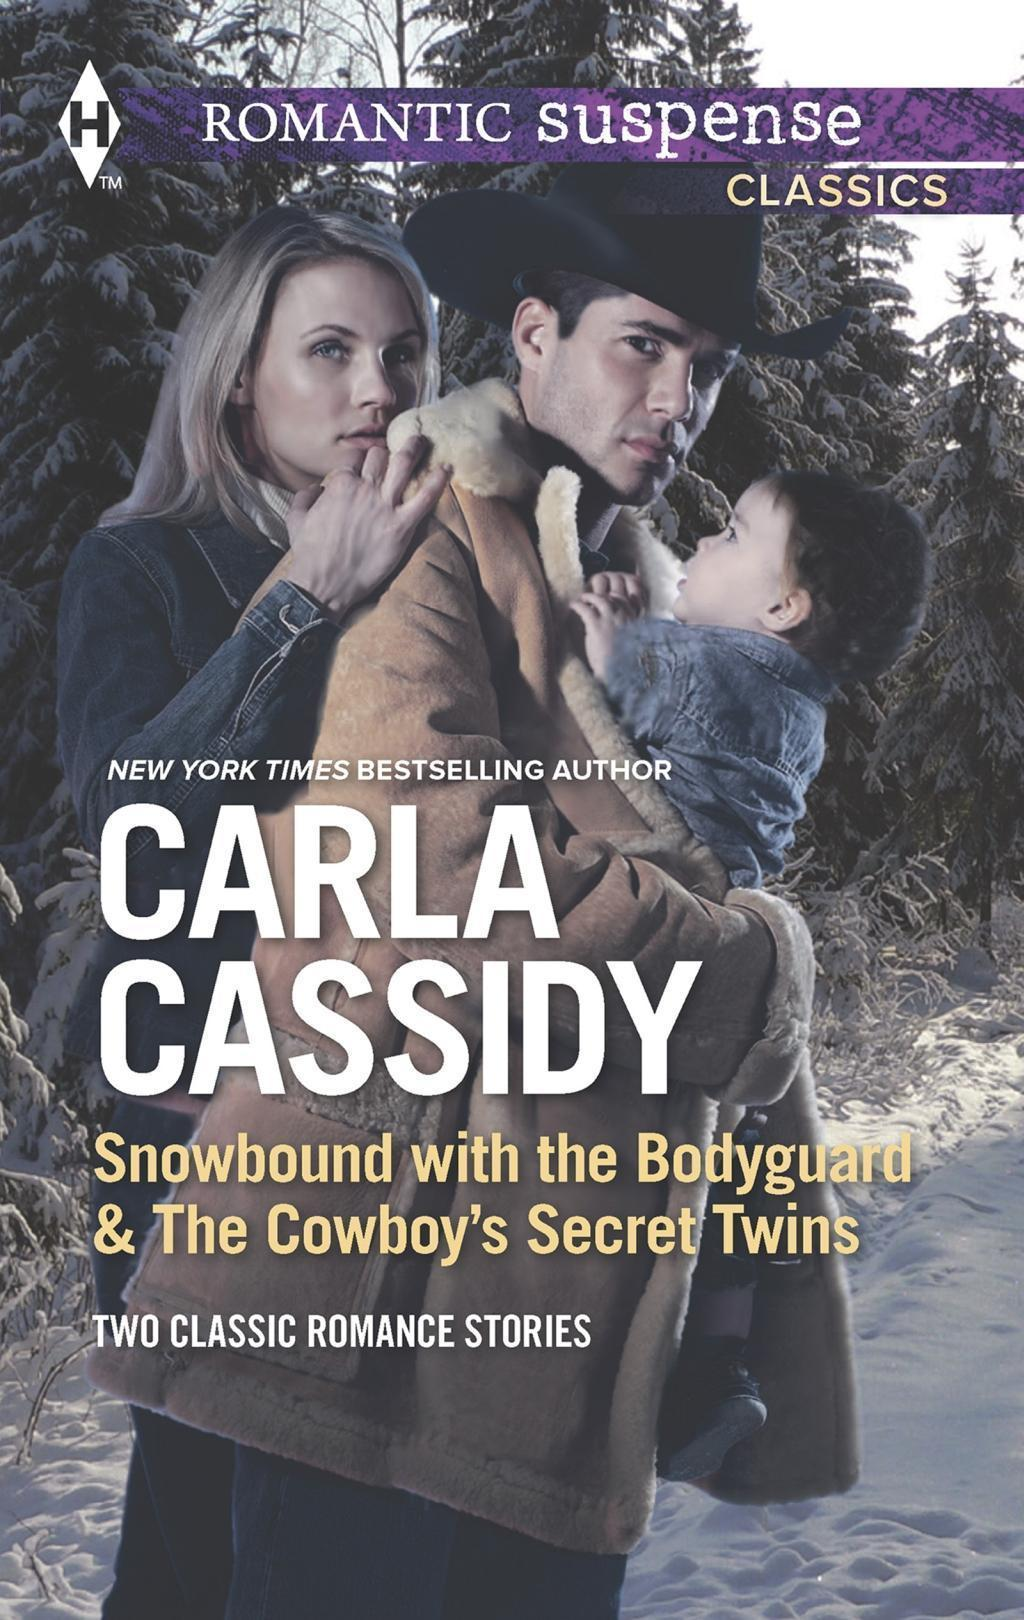 Snowbound with the Bodyguard & The Cowboy's Secret Twins: Snowbound with the Bodyguard / The Cowboy's Secret Twins (Mills & Boon M&B)